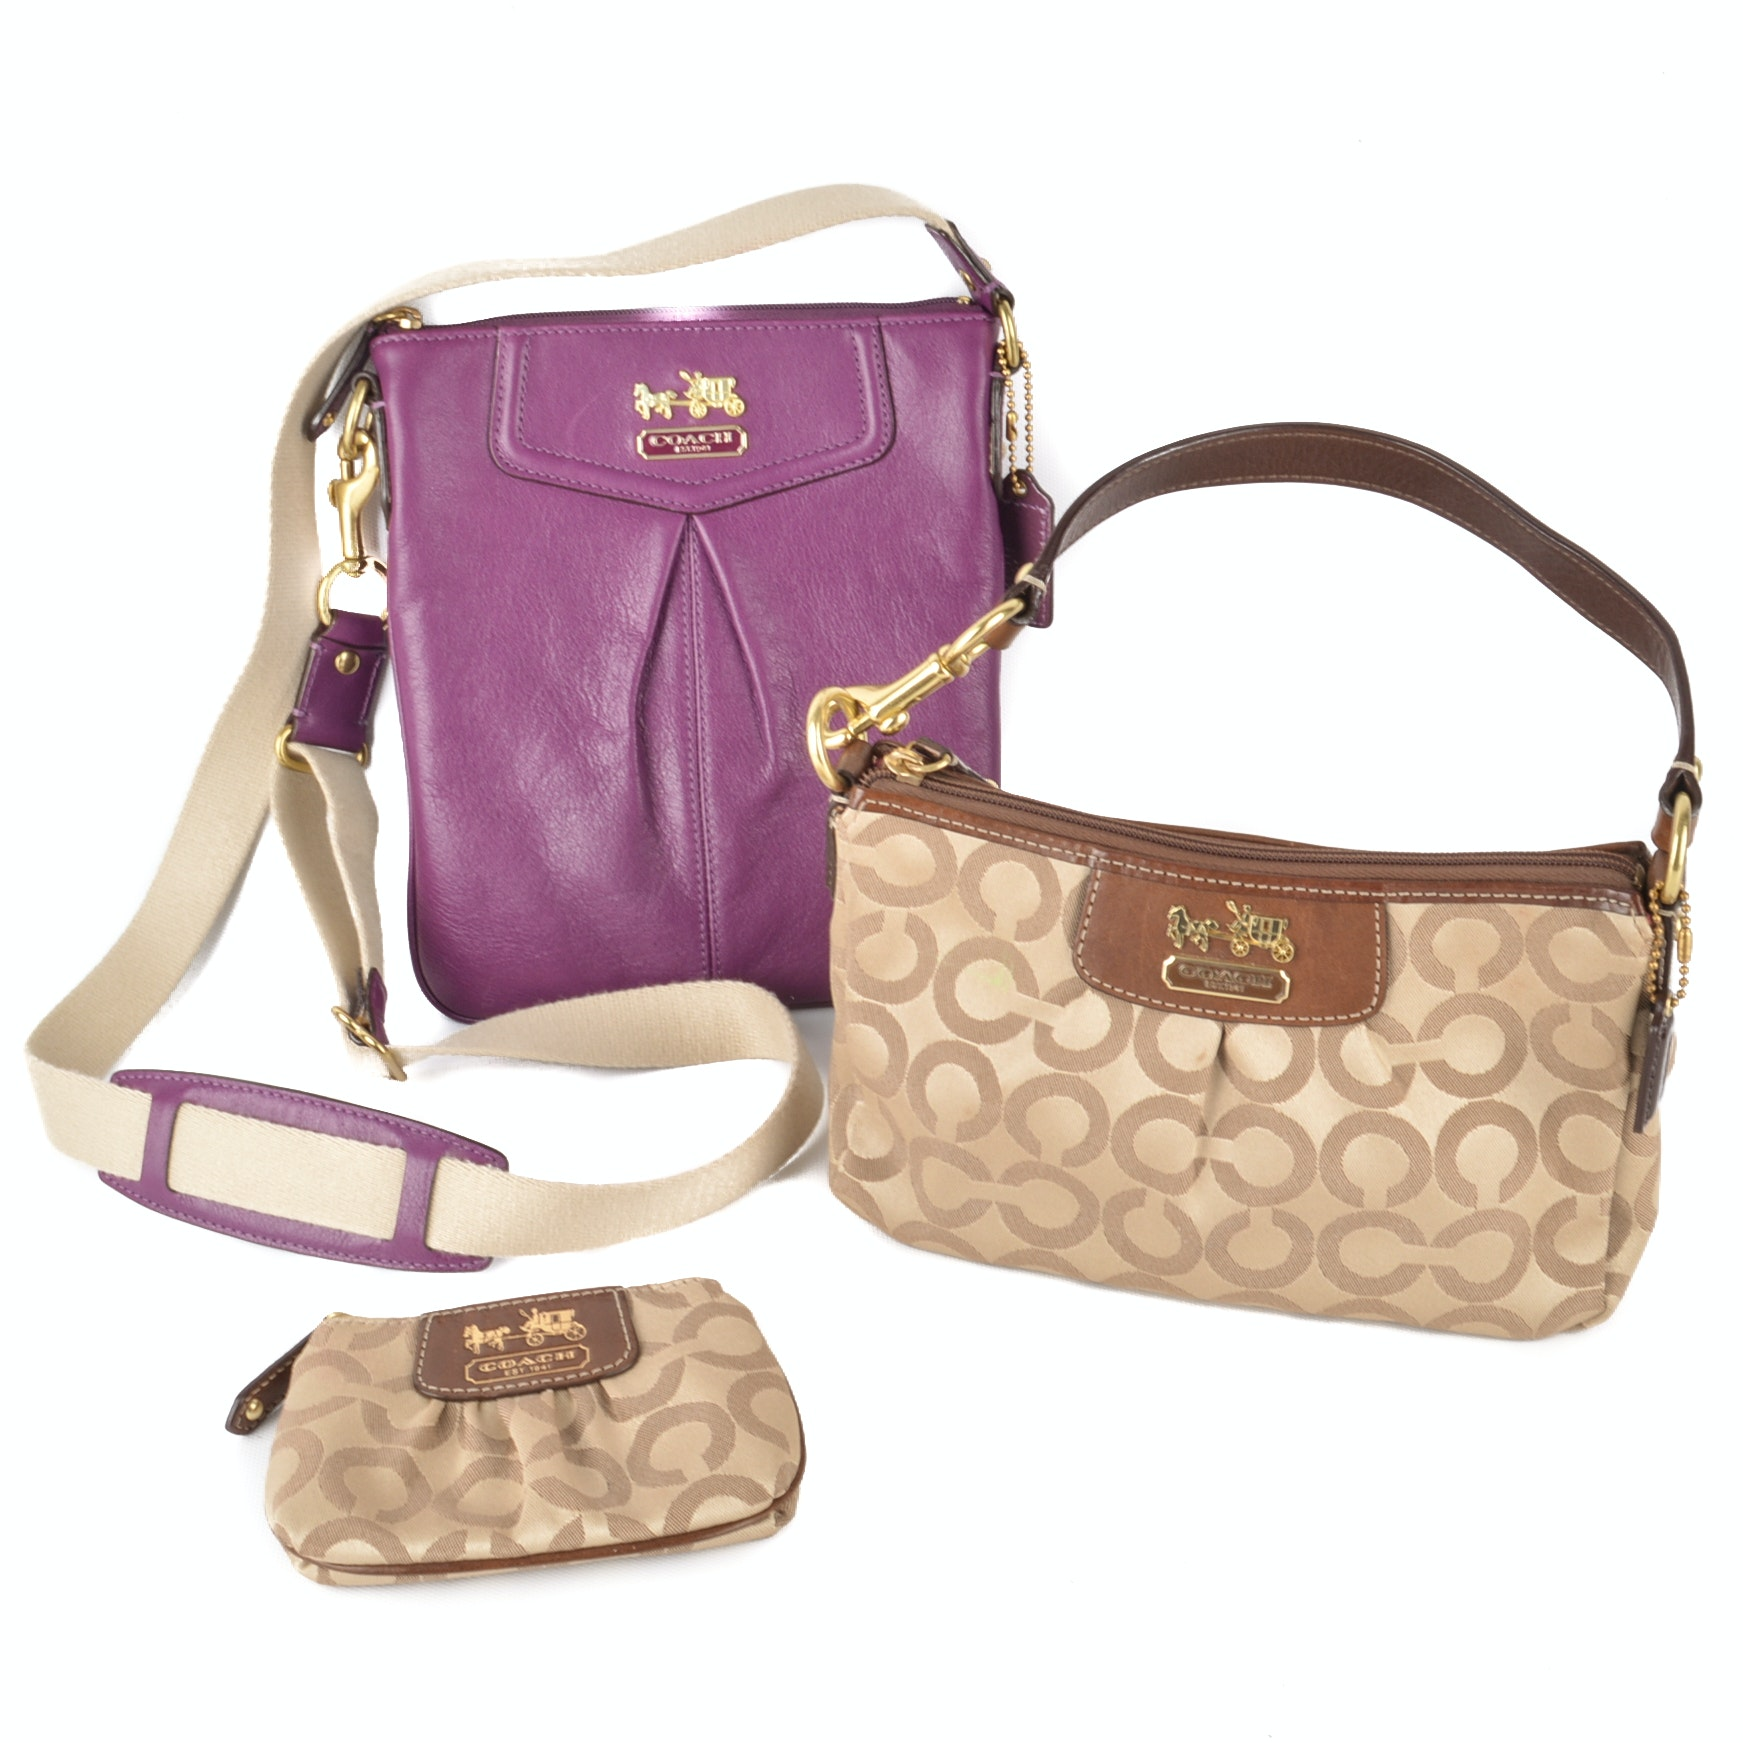 "Coach ""Madison"" Plum Leather Crossbody Bag and Classic Monogram Print Bag"